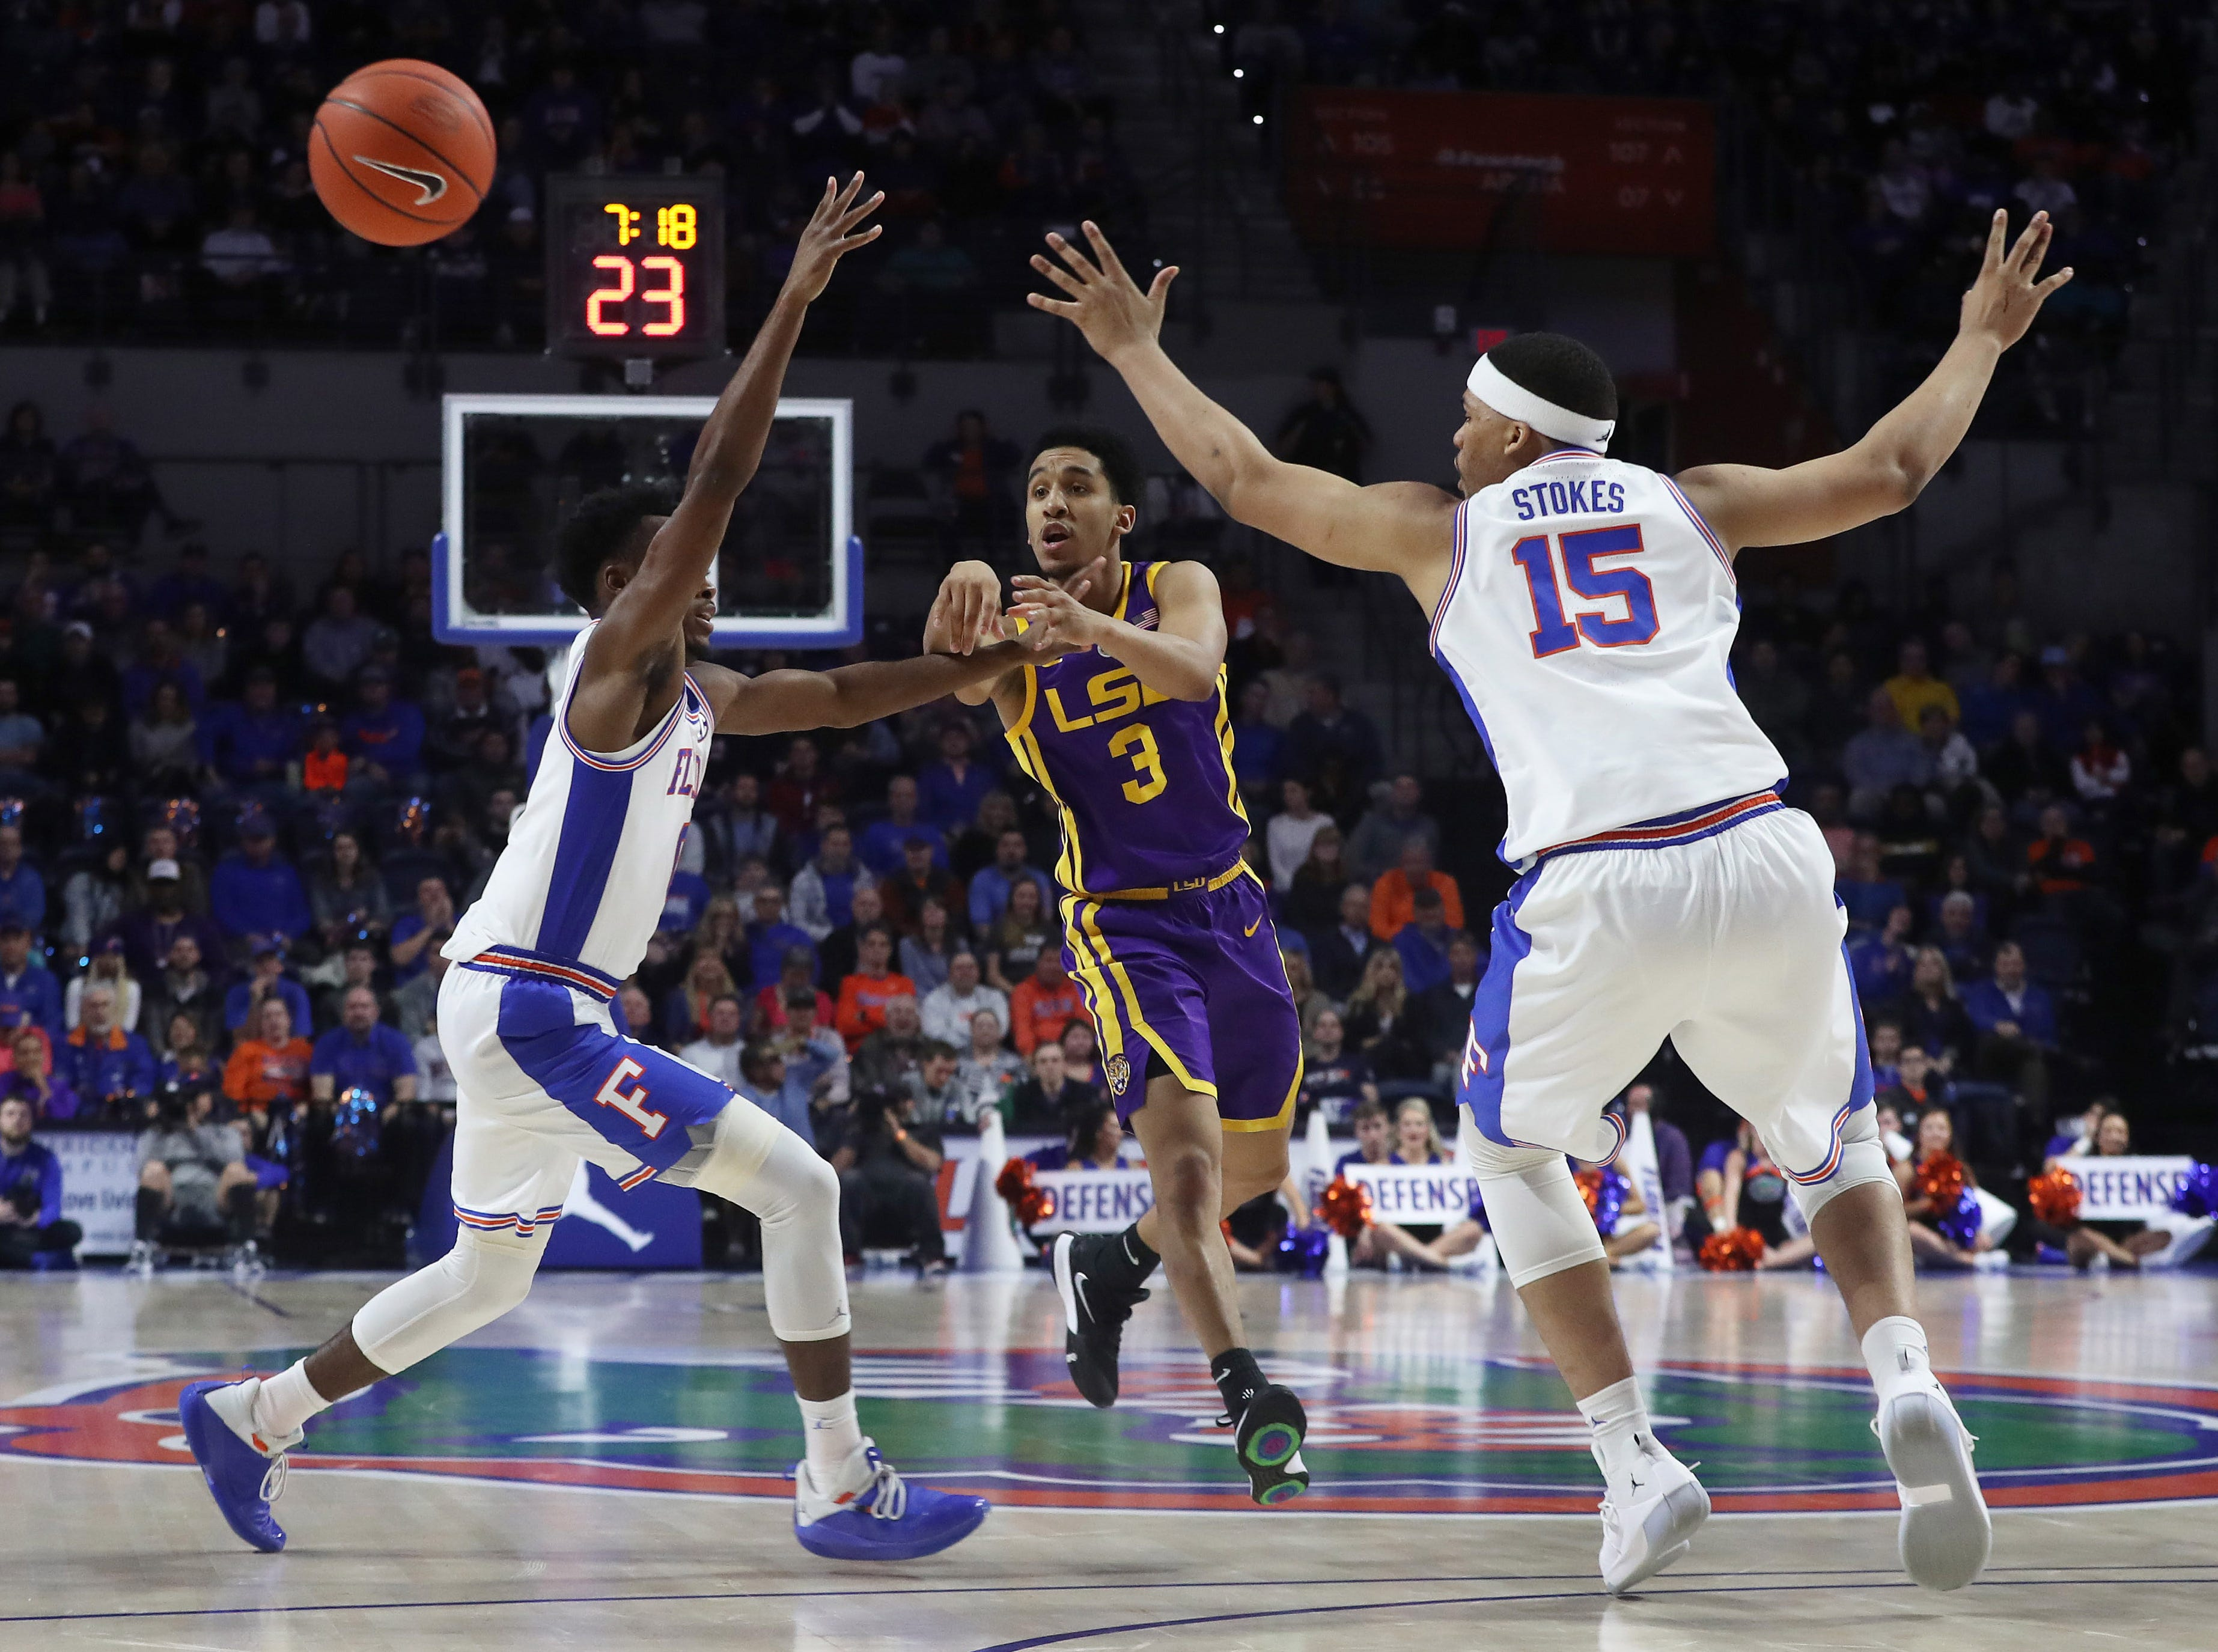 Mar 6, 2019; Gainesville, FL, USA; LSU Tigers guard Tremont Waters (3) passes the ball past Florida Gators guard Mike Okauru (0) and forward Isaiah Stokes (15) during the first half at Exactech Arena. Mandatory Credit: Kim Klement-USA TODAY Sports